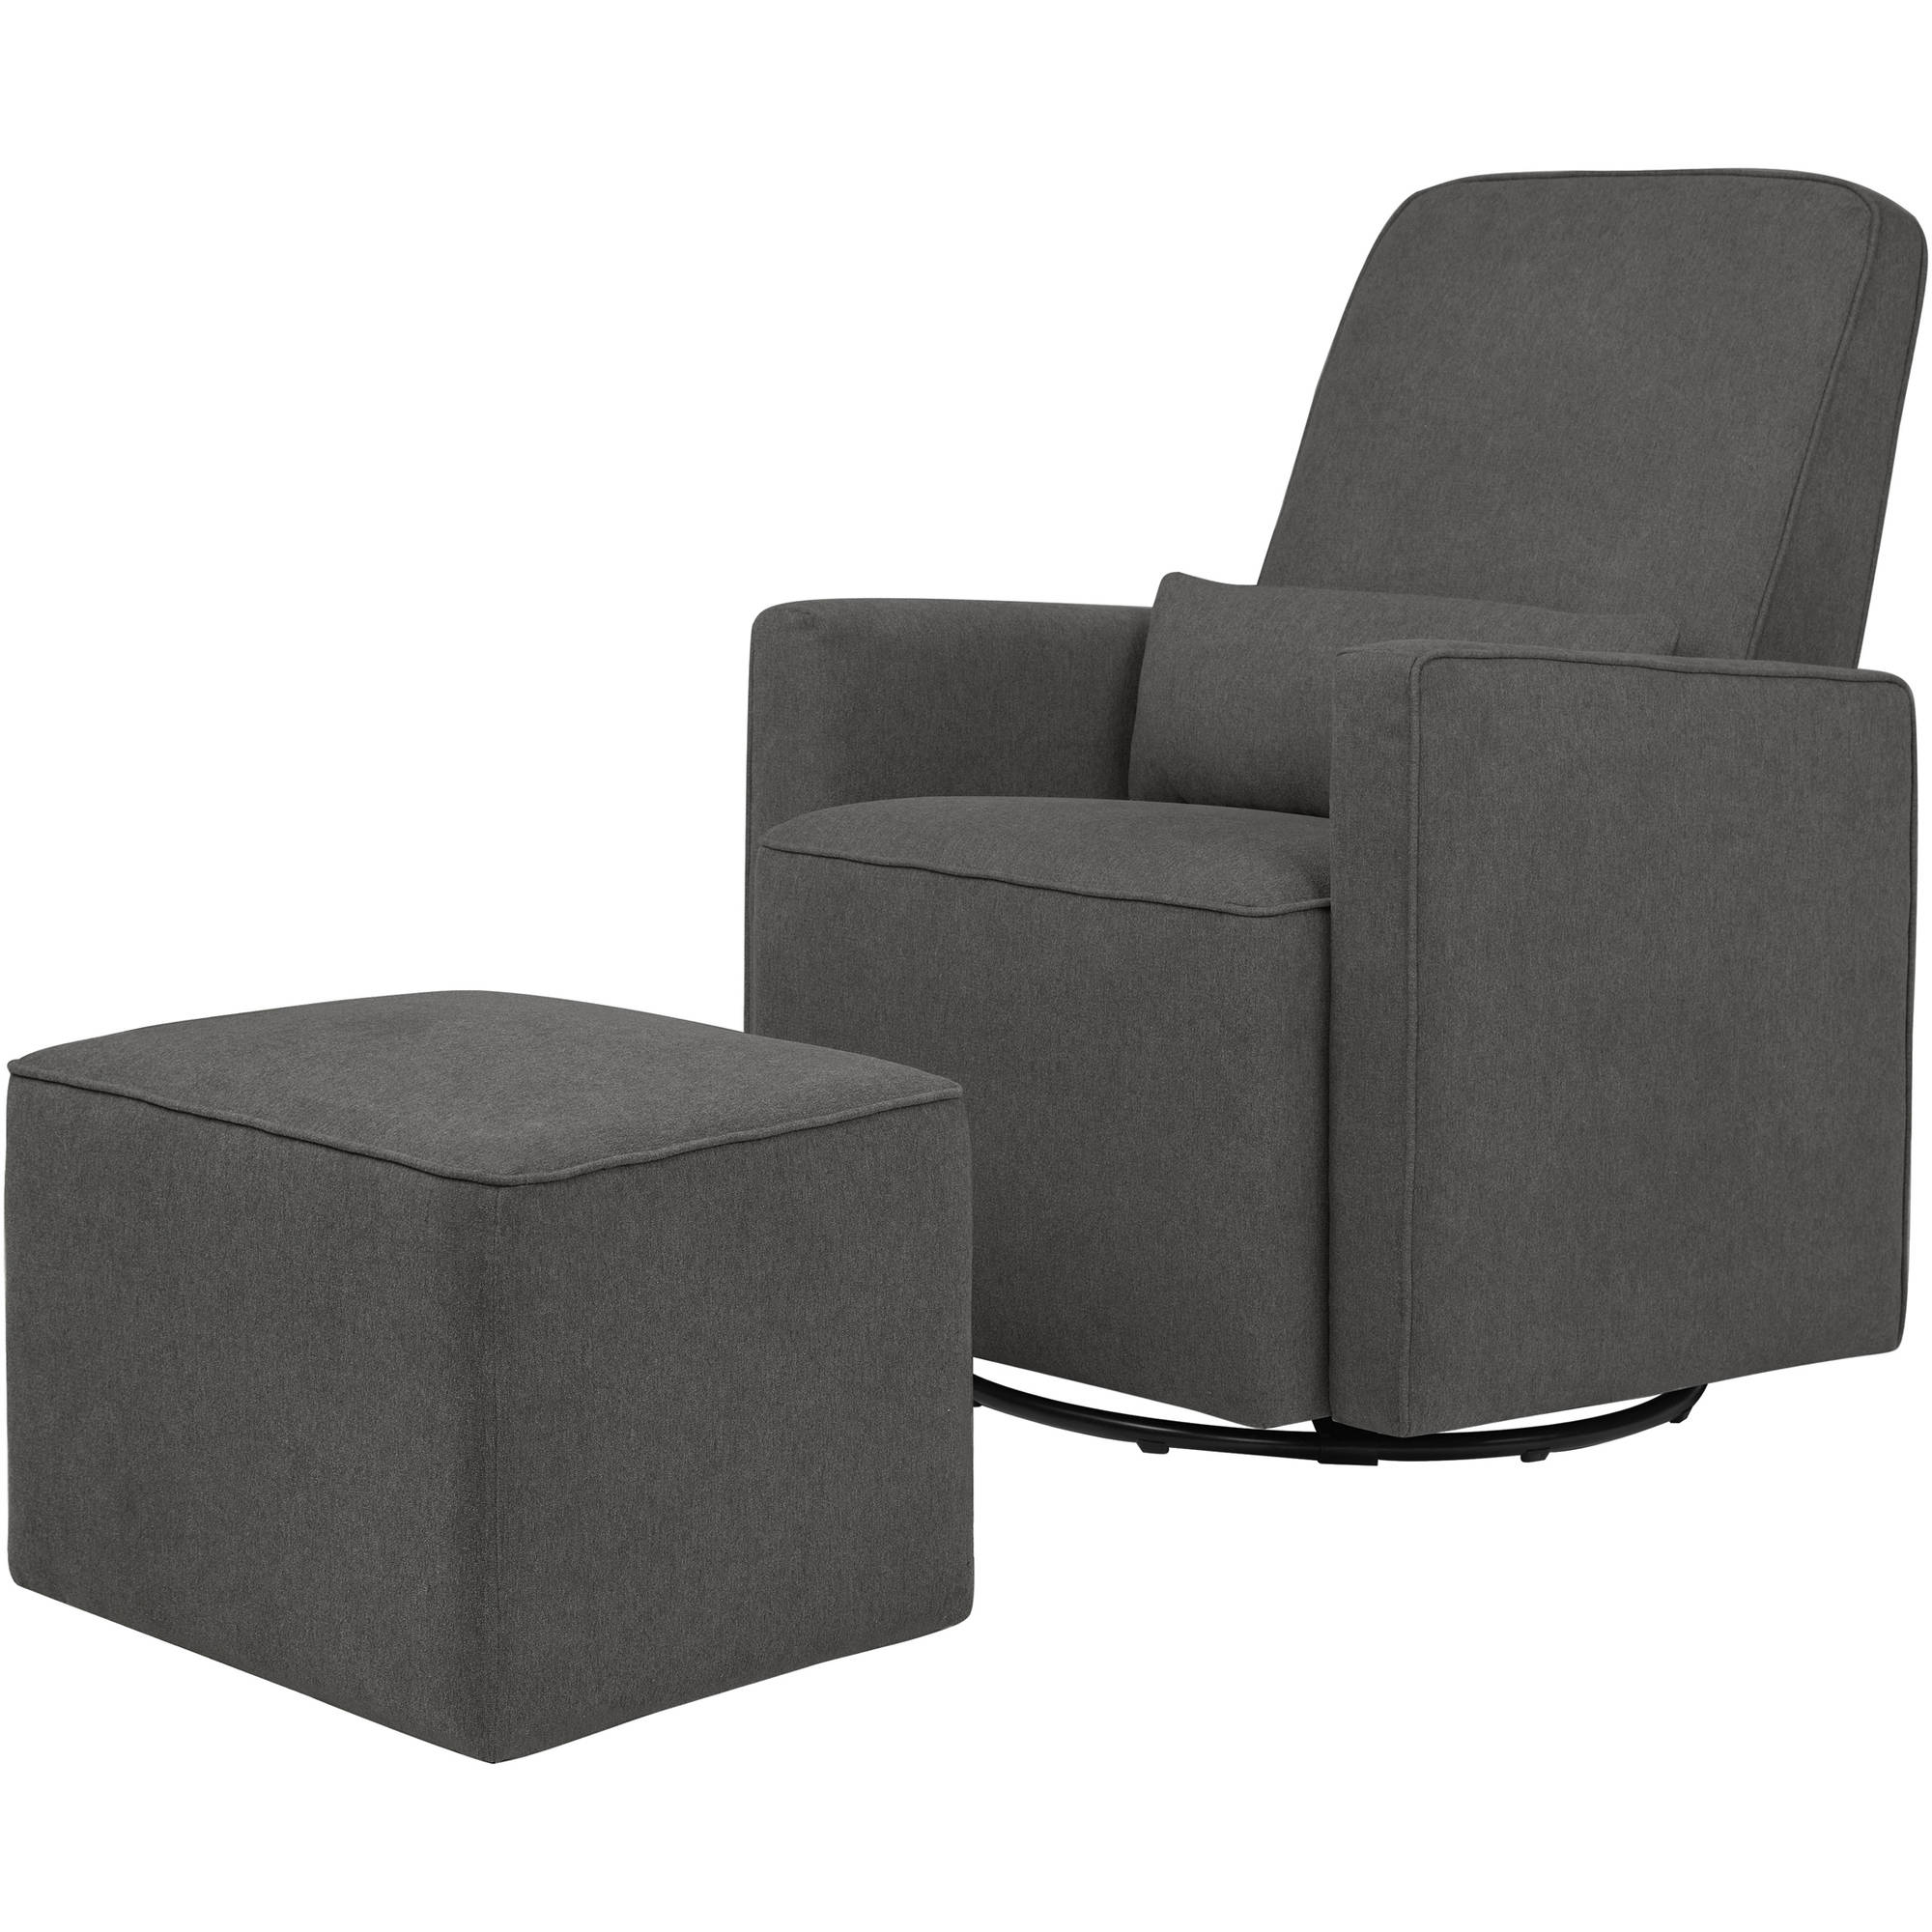 DaVinci Olive Glider and Ottoman, Dark Grey by The MDB Family